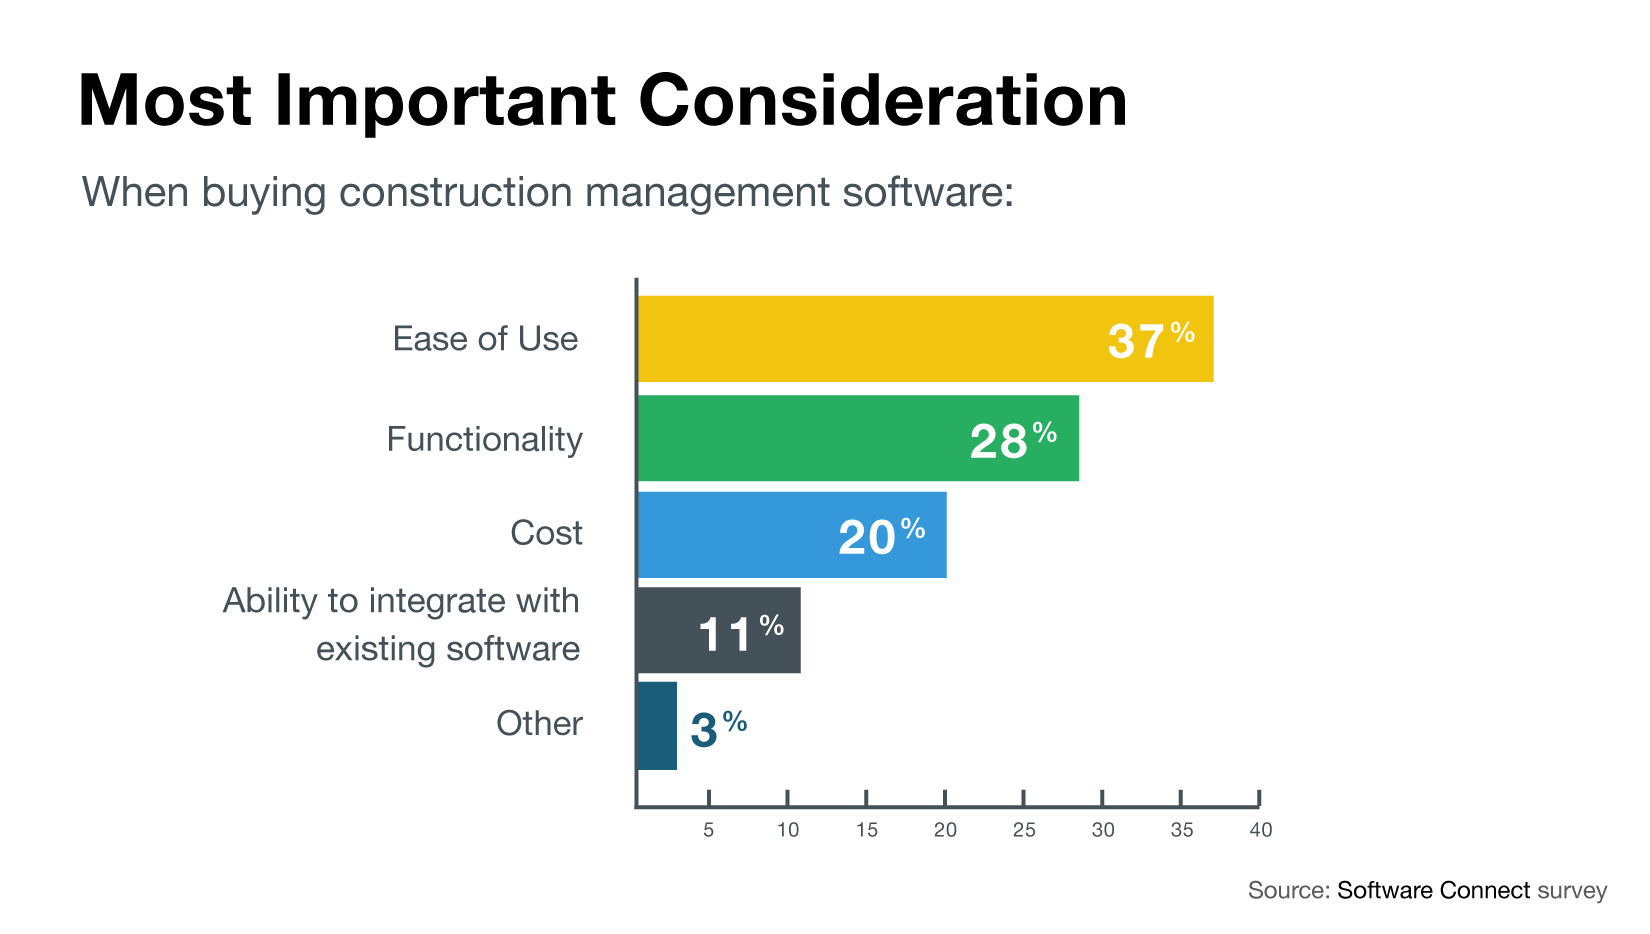 Chart of most important purchasing considerations for construction software